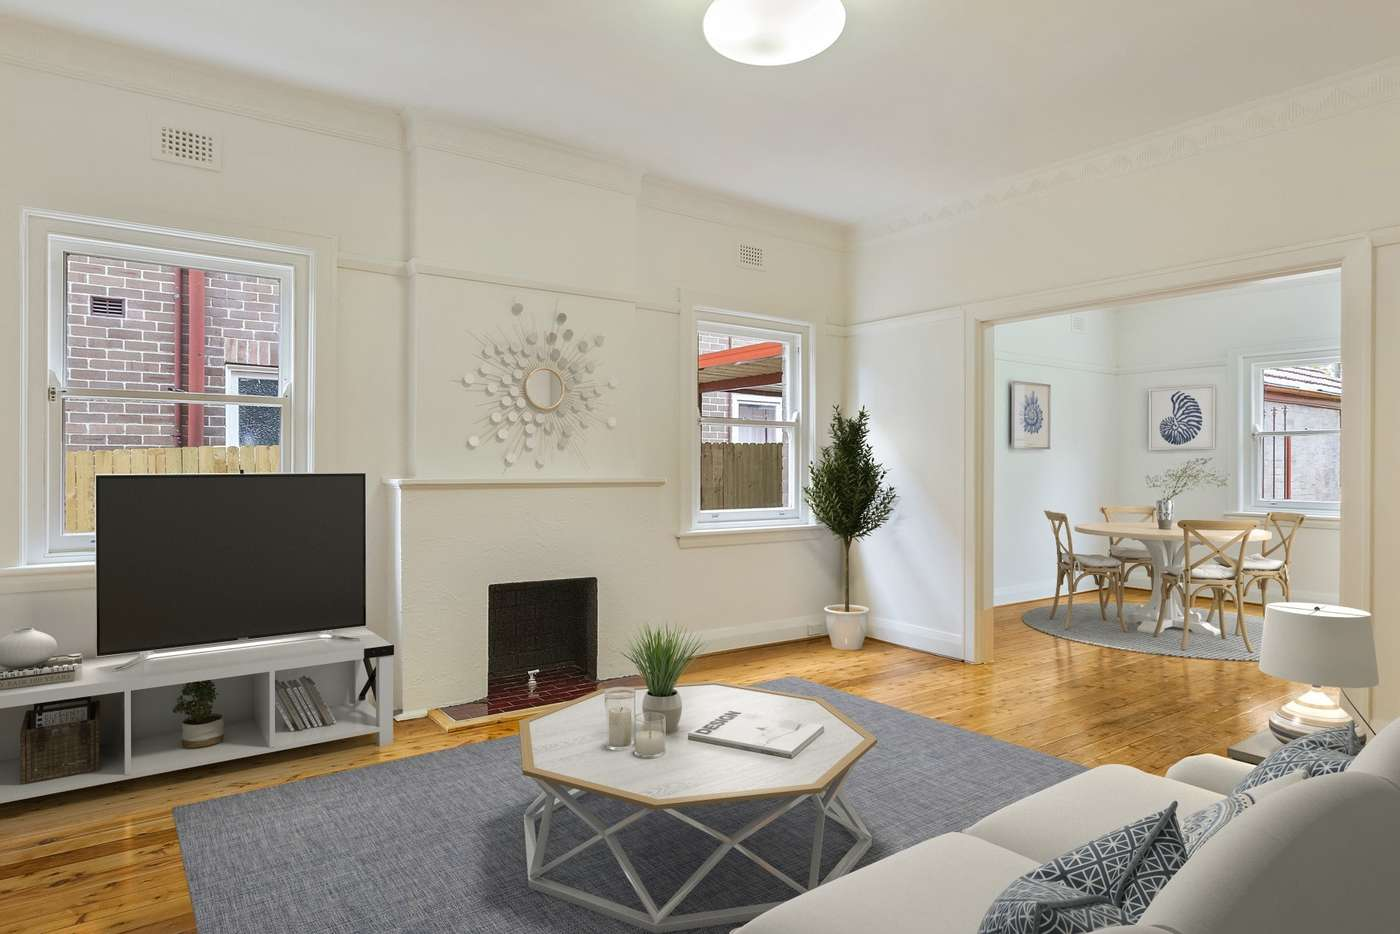 Main view of Homely house listing, 1/6 Sunning Place, Summer Hill NSW 2130